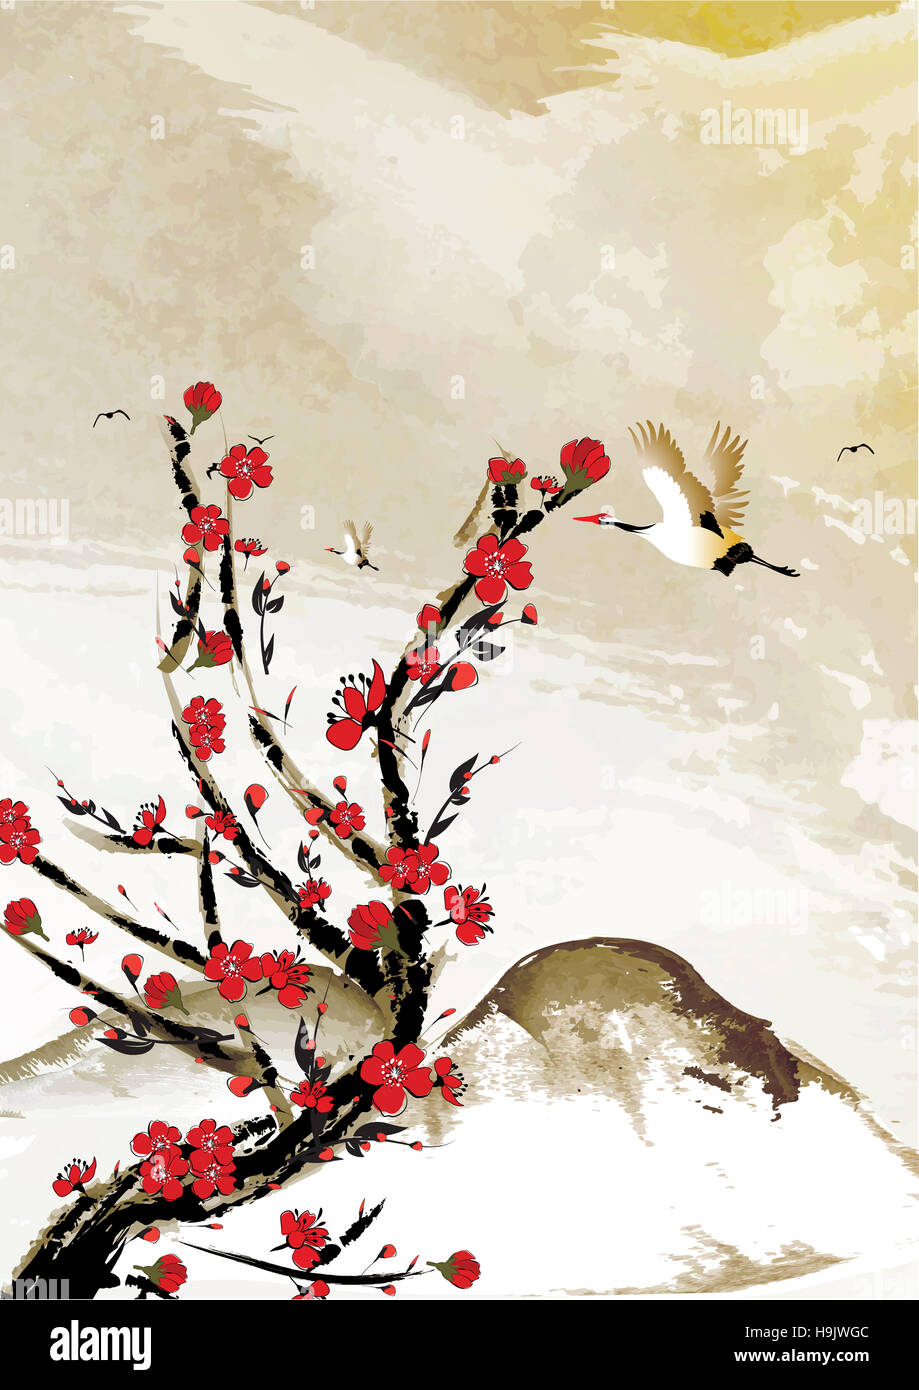 Mountain Background With Cherry Flowers And Crane Birds Japanese